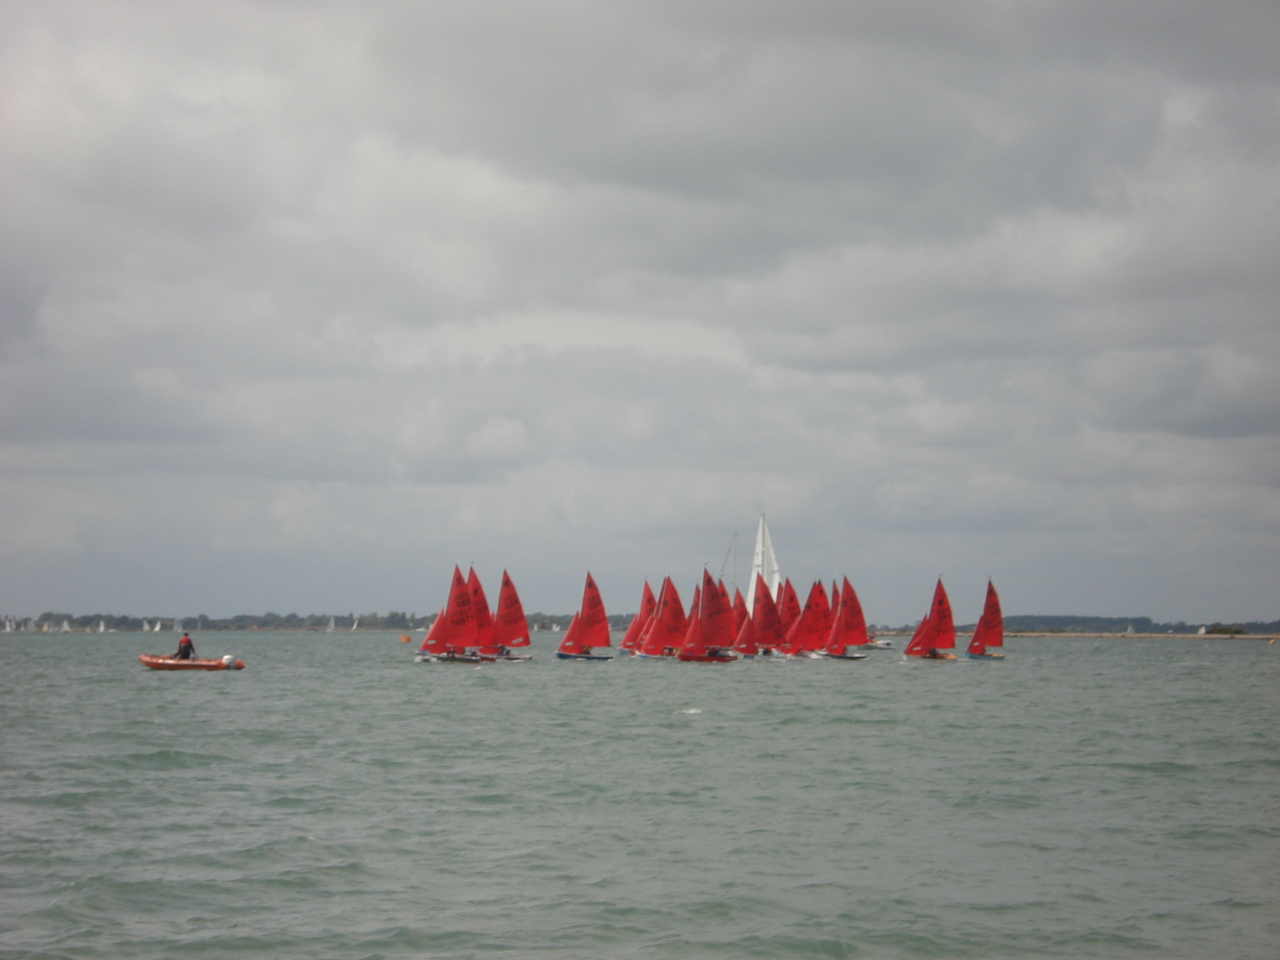 A fleet of Mirror dinghies starting a race in the distance under a cloudy sky